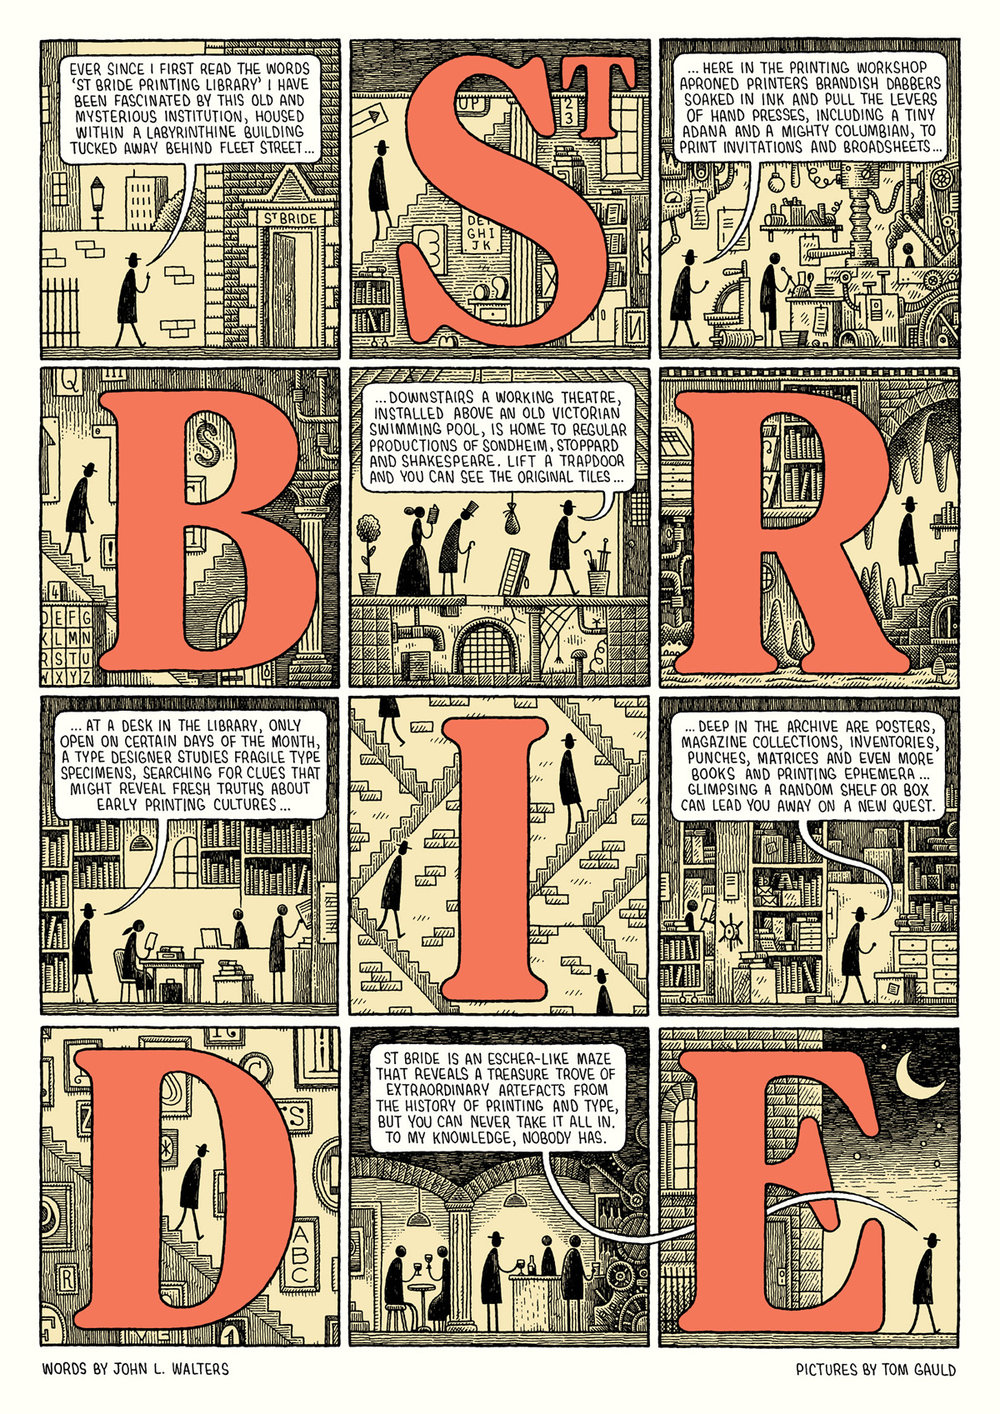 A description of St Brides printing library, with text overlaid on cartoon images